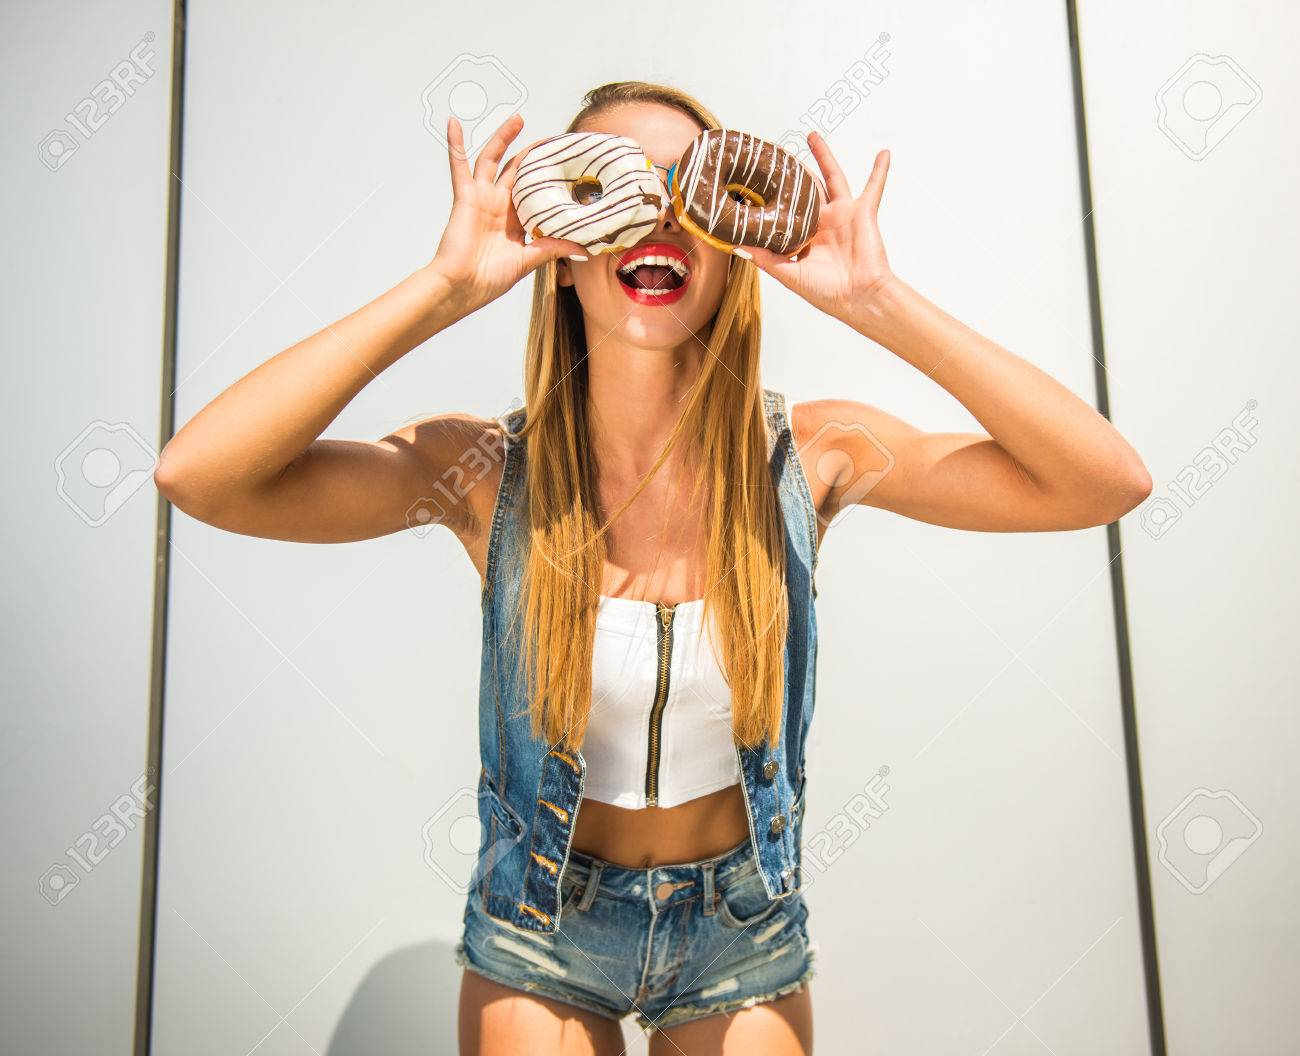 Playful young woman holding donuts against her eyes and smiling while standing against the wall. Standard-Bild - 48107616